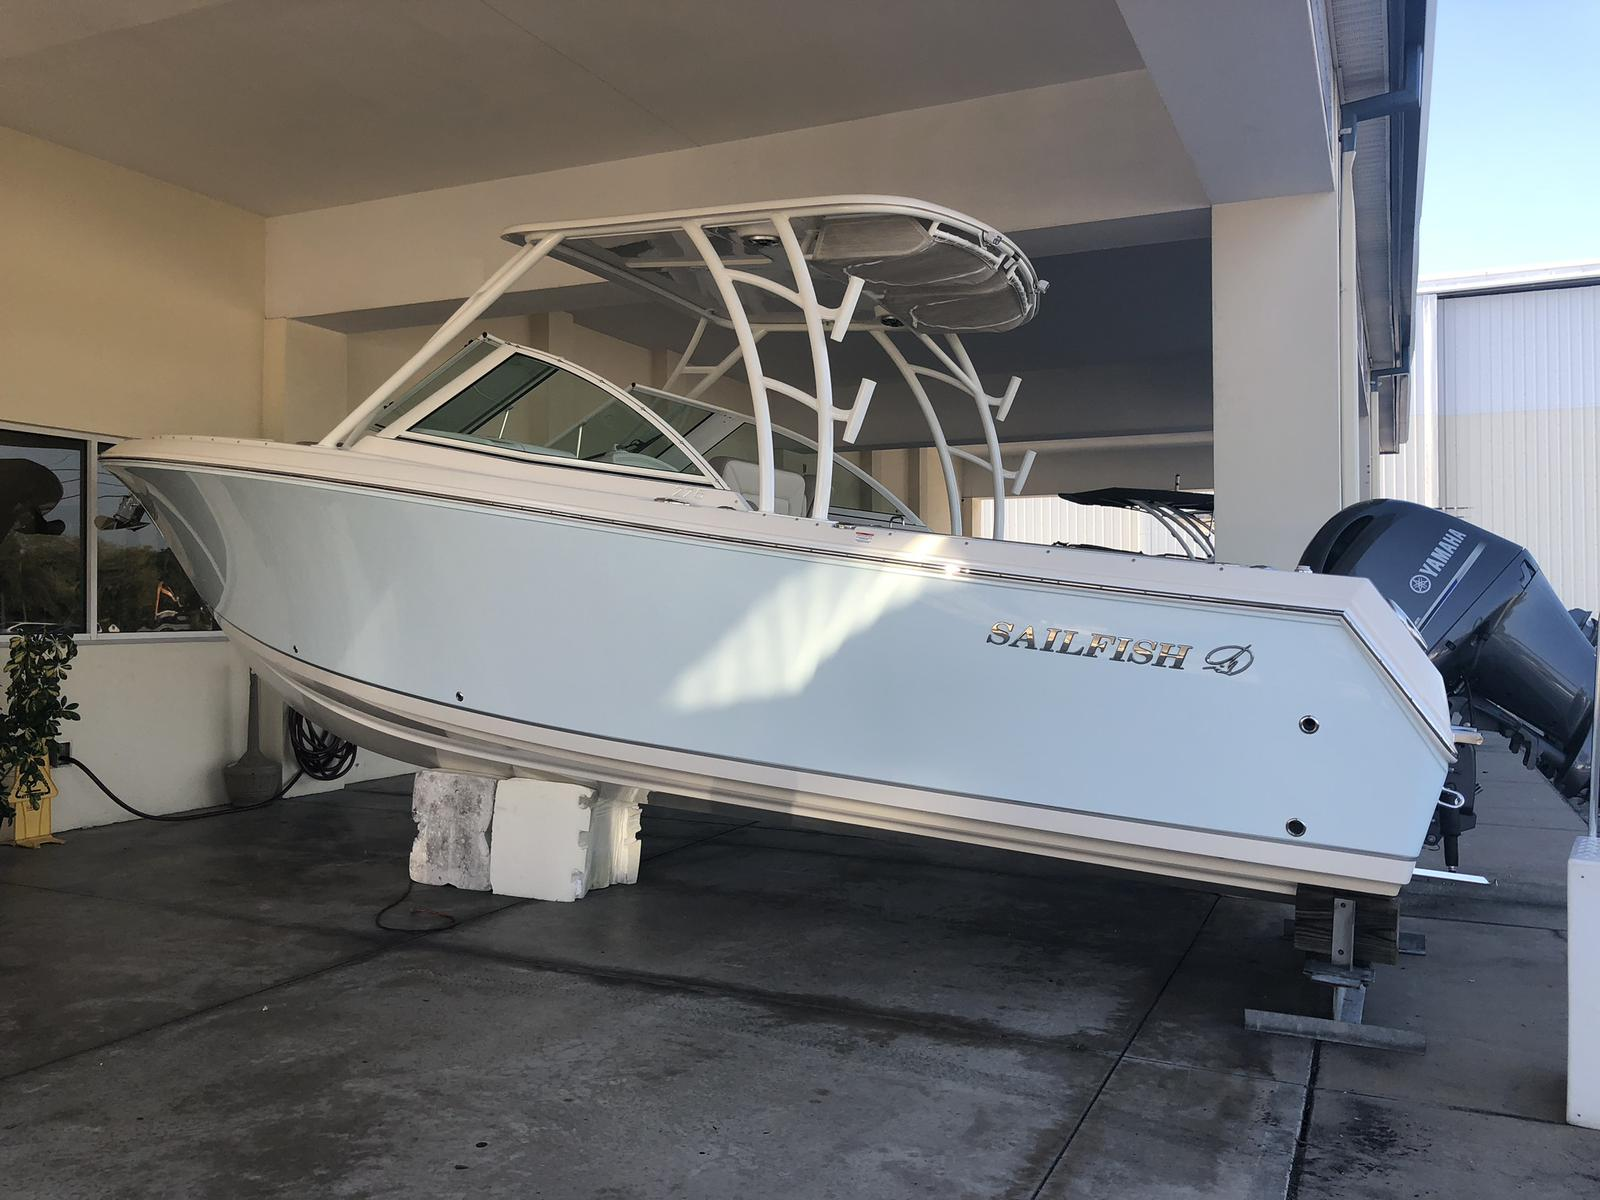 NEW 2019 Sailfish 275 DC - Sara Bay Marina